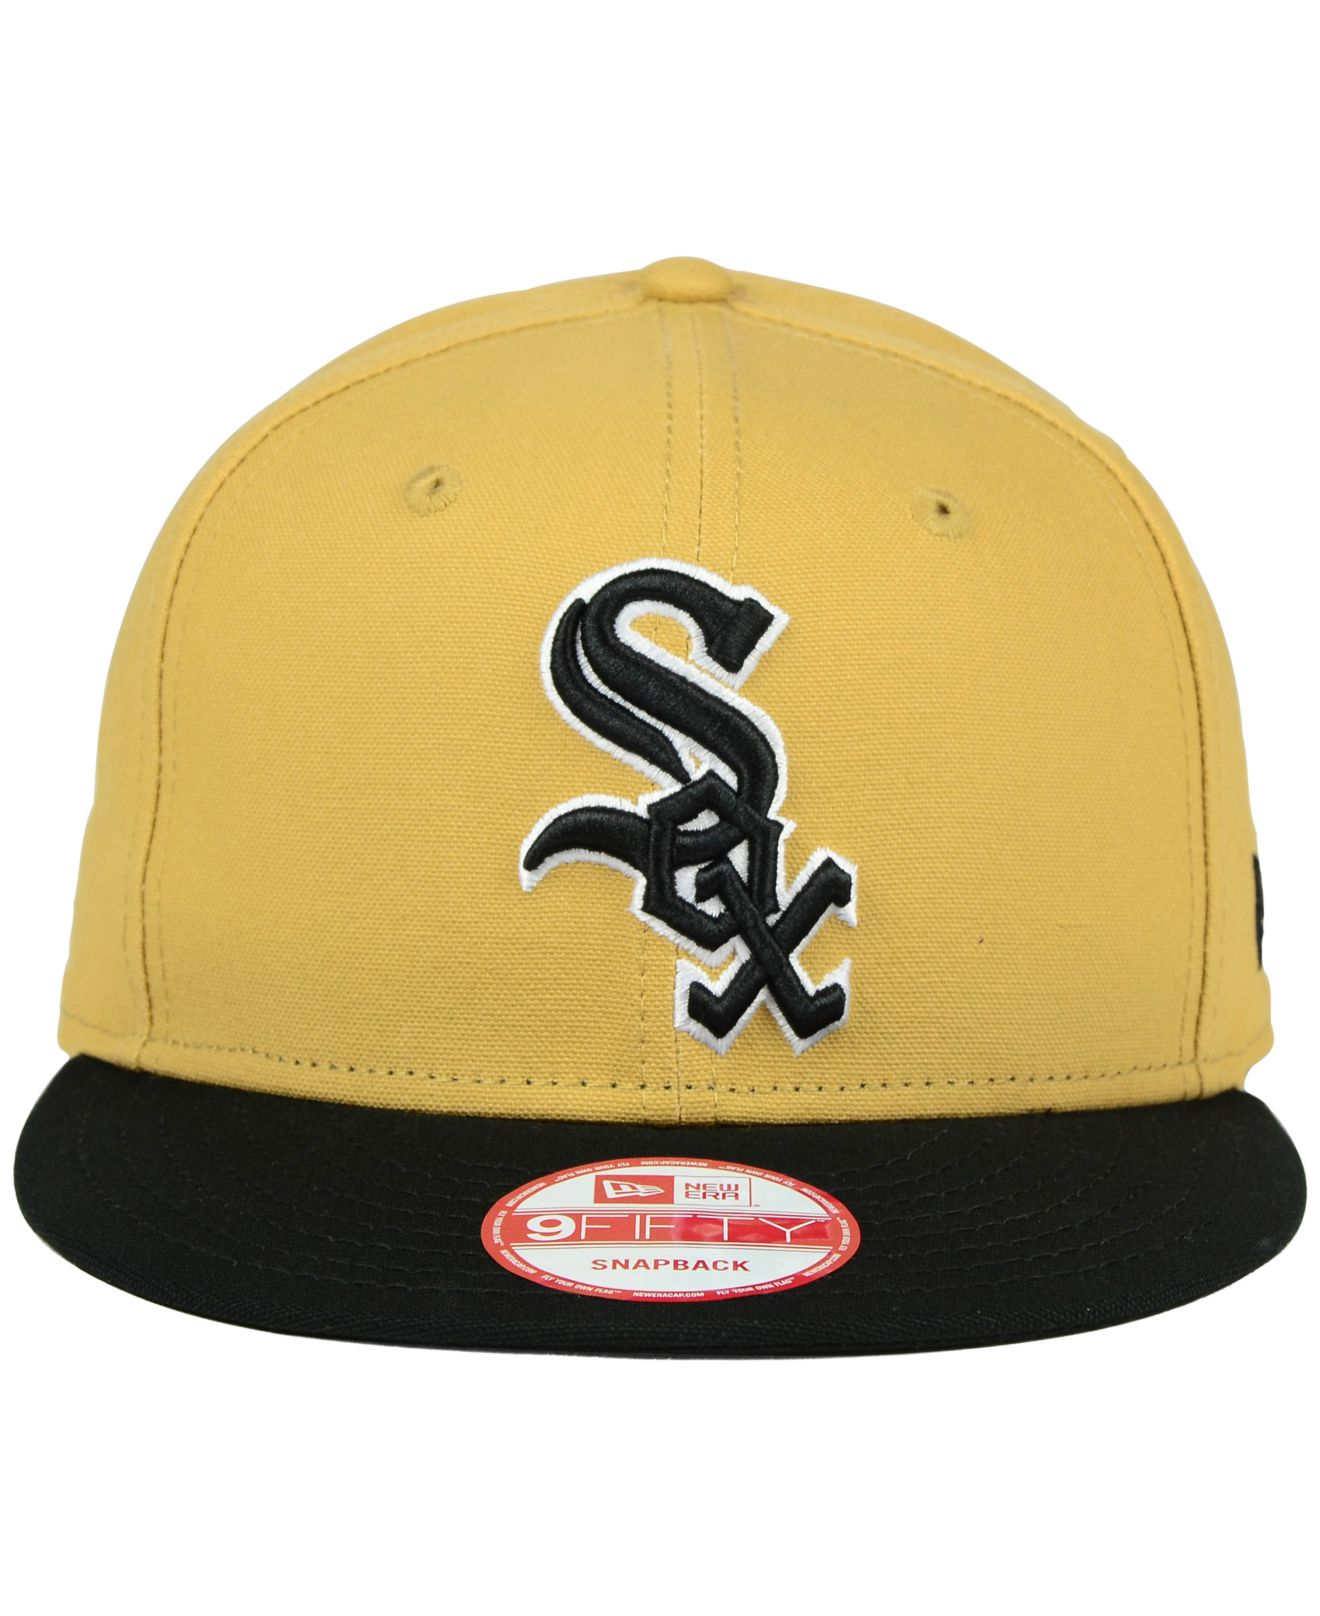 the best attitude f5685 4d00e KTZ Chicago White Sox Classic Canvas 9fifty Snapback Cap in Yellow ...